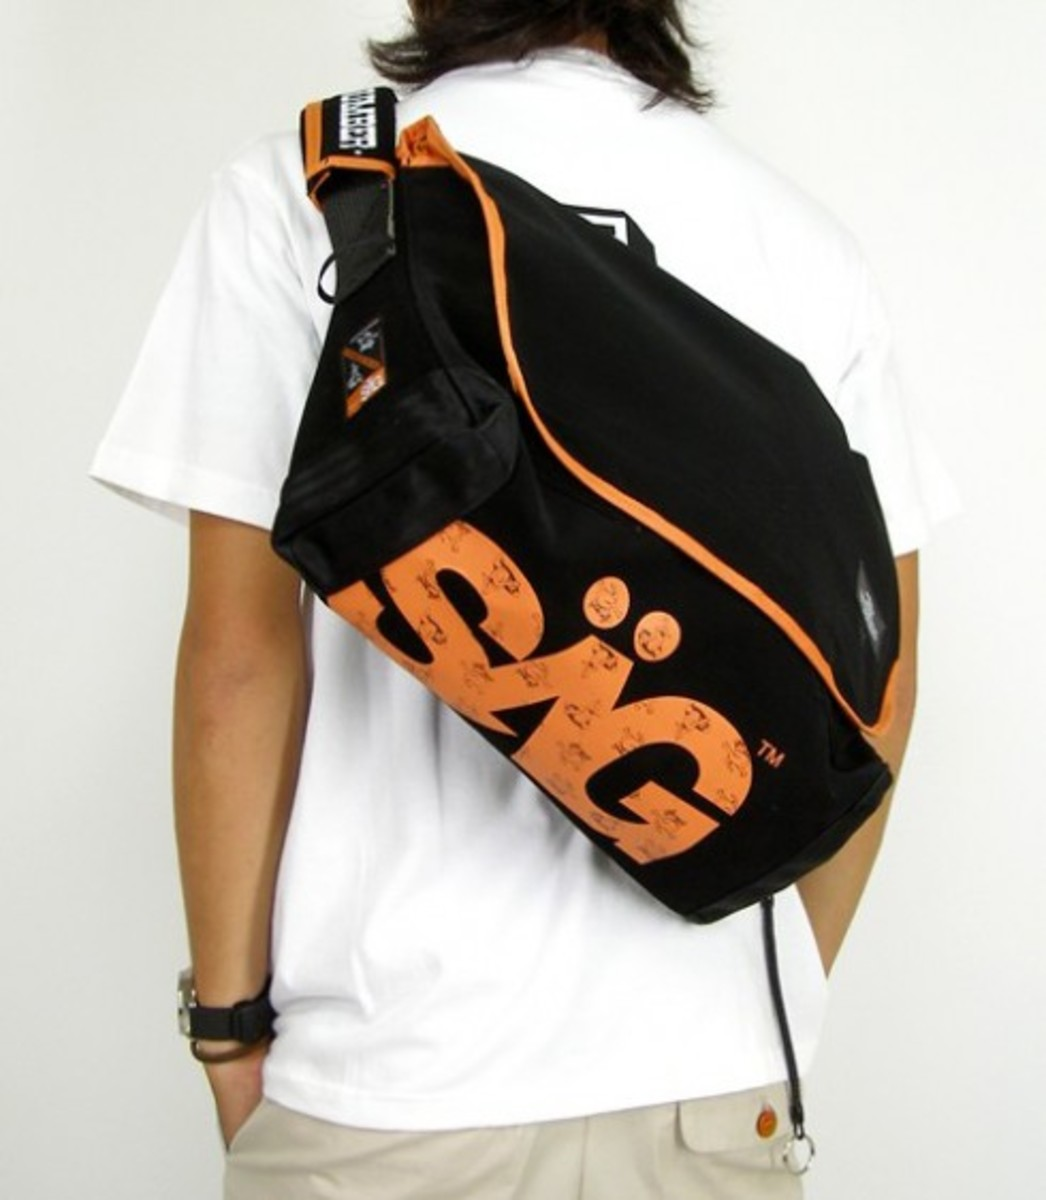 SAGLIFE (SAGLIFE) x MAGIC NUMBER - Travelers Messenger Bag